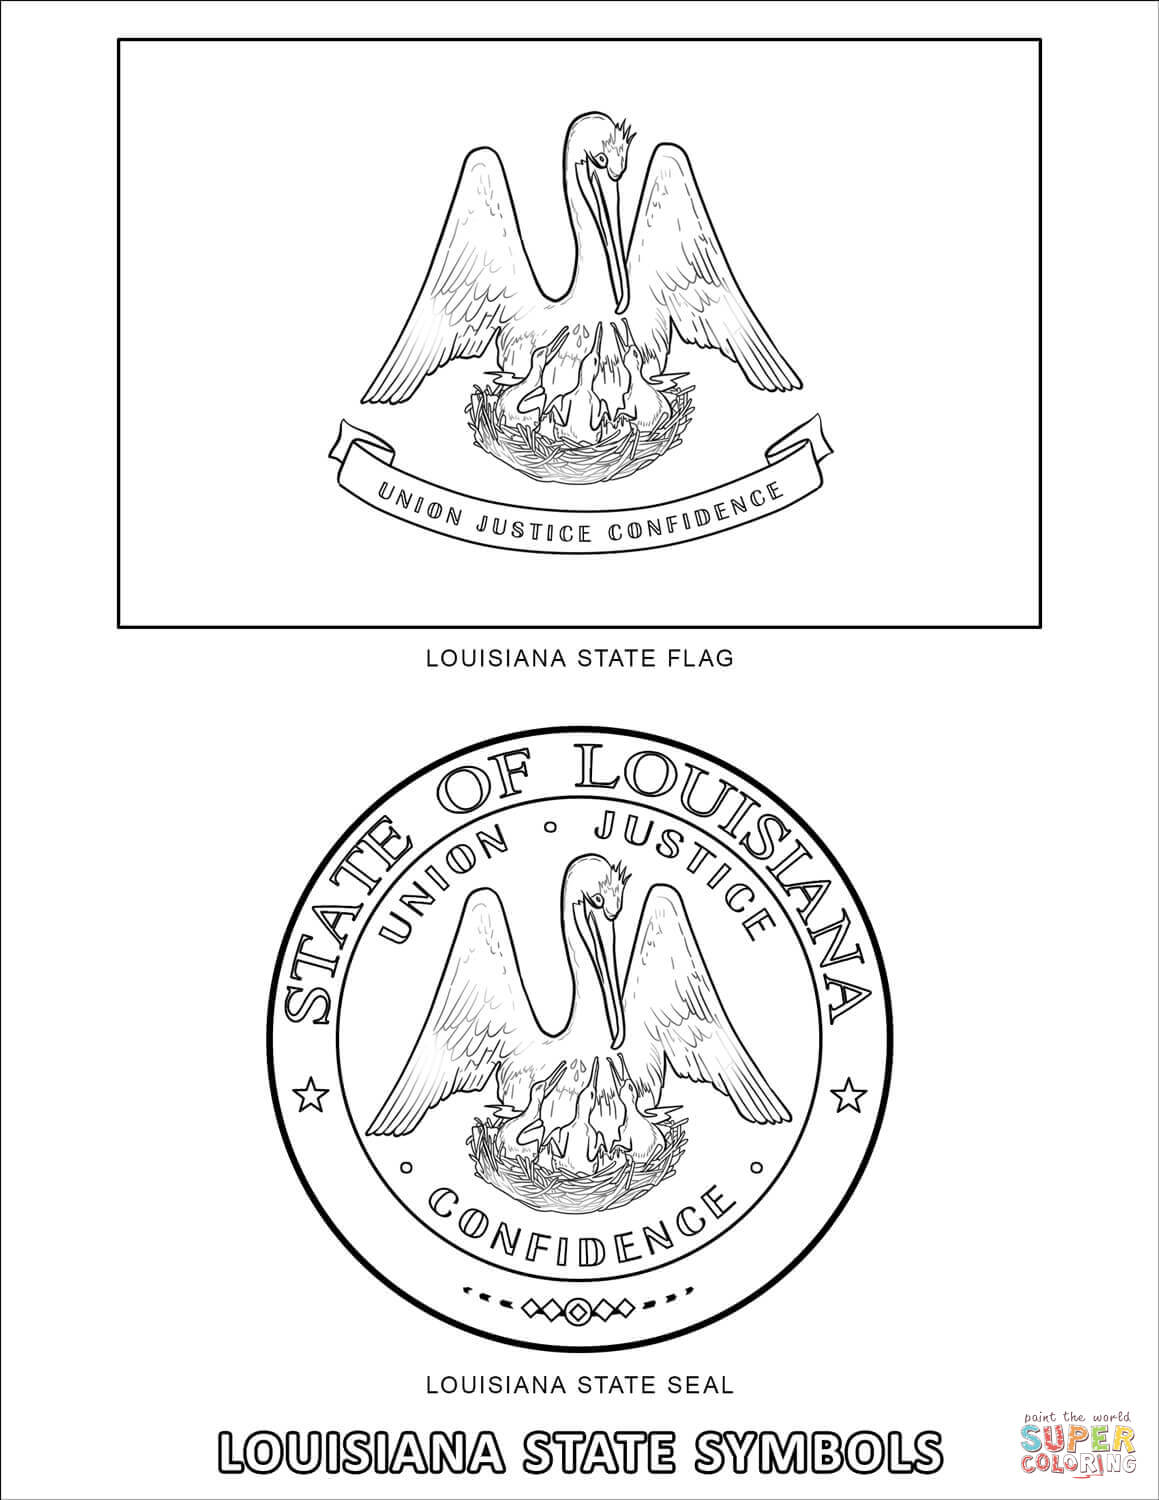 louisiana state symbols coloring pages louisiana state symbols coloring pages coloring home louisiana coloring pages state symbols